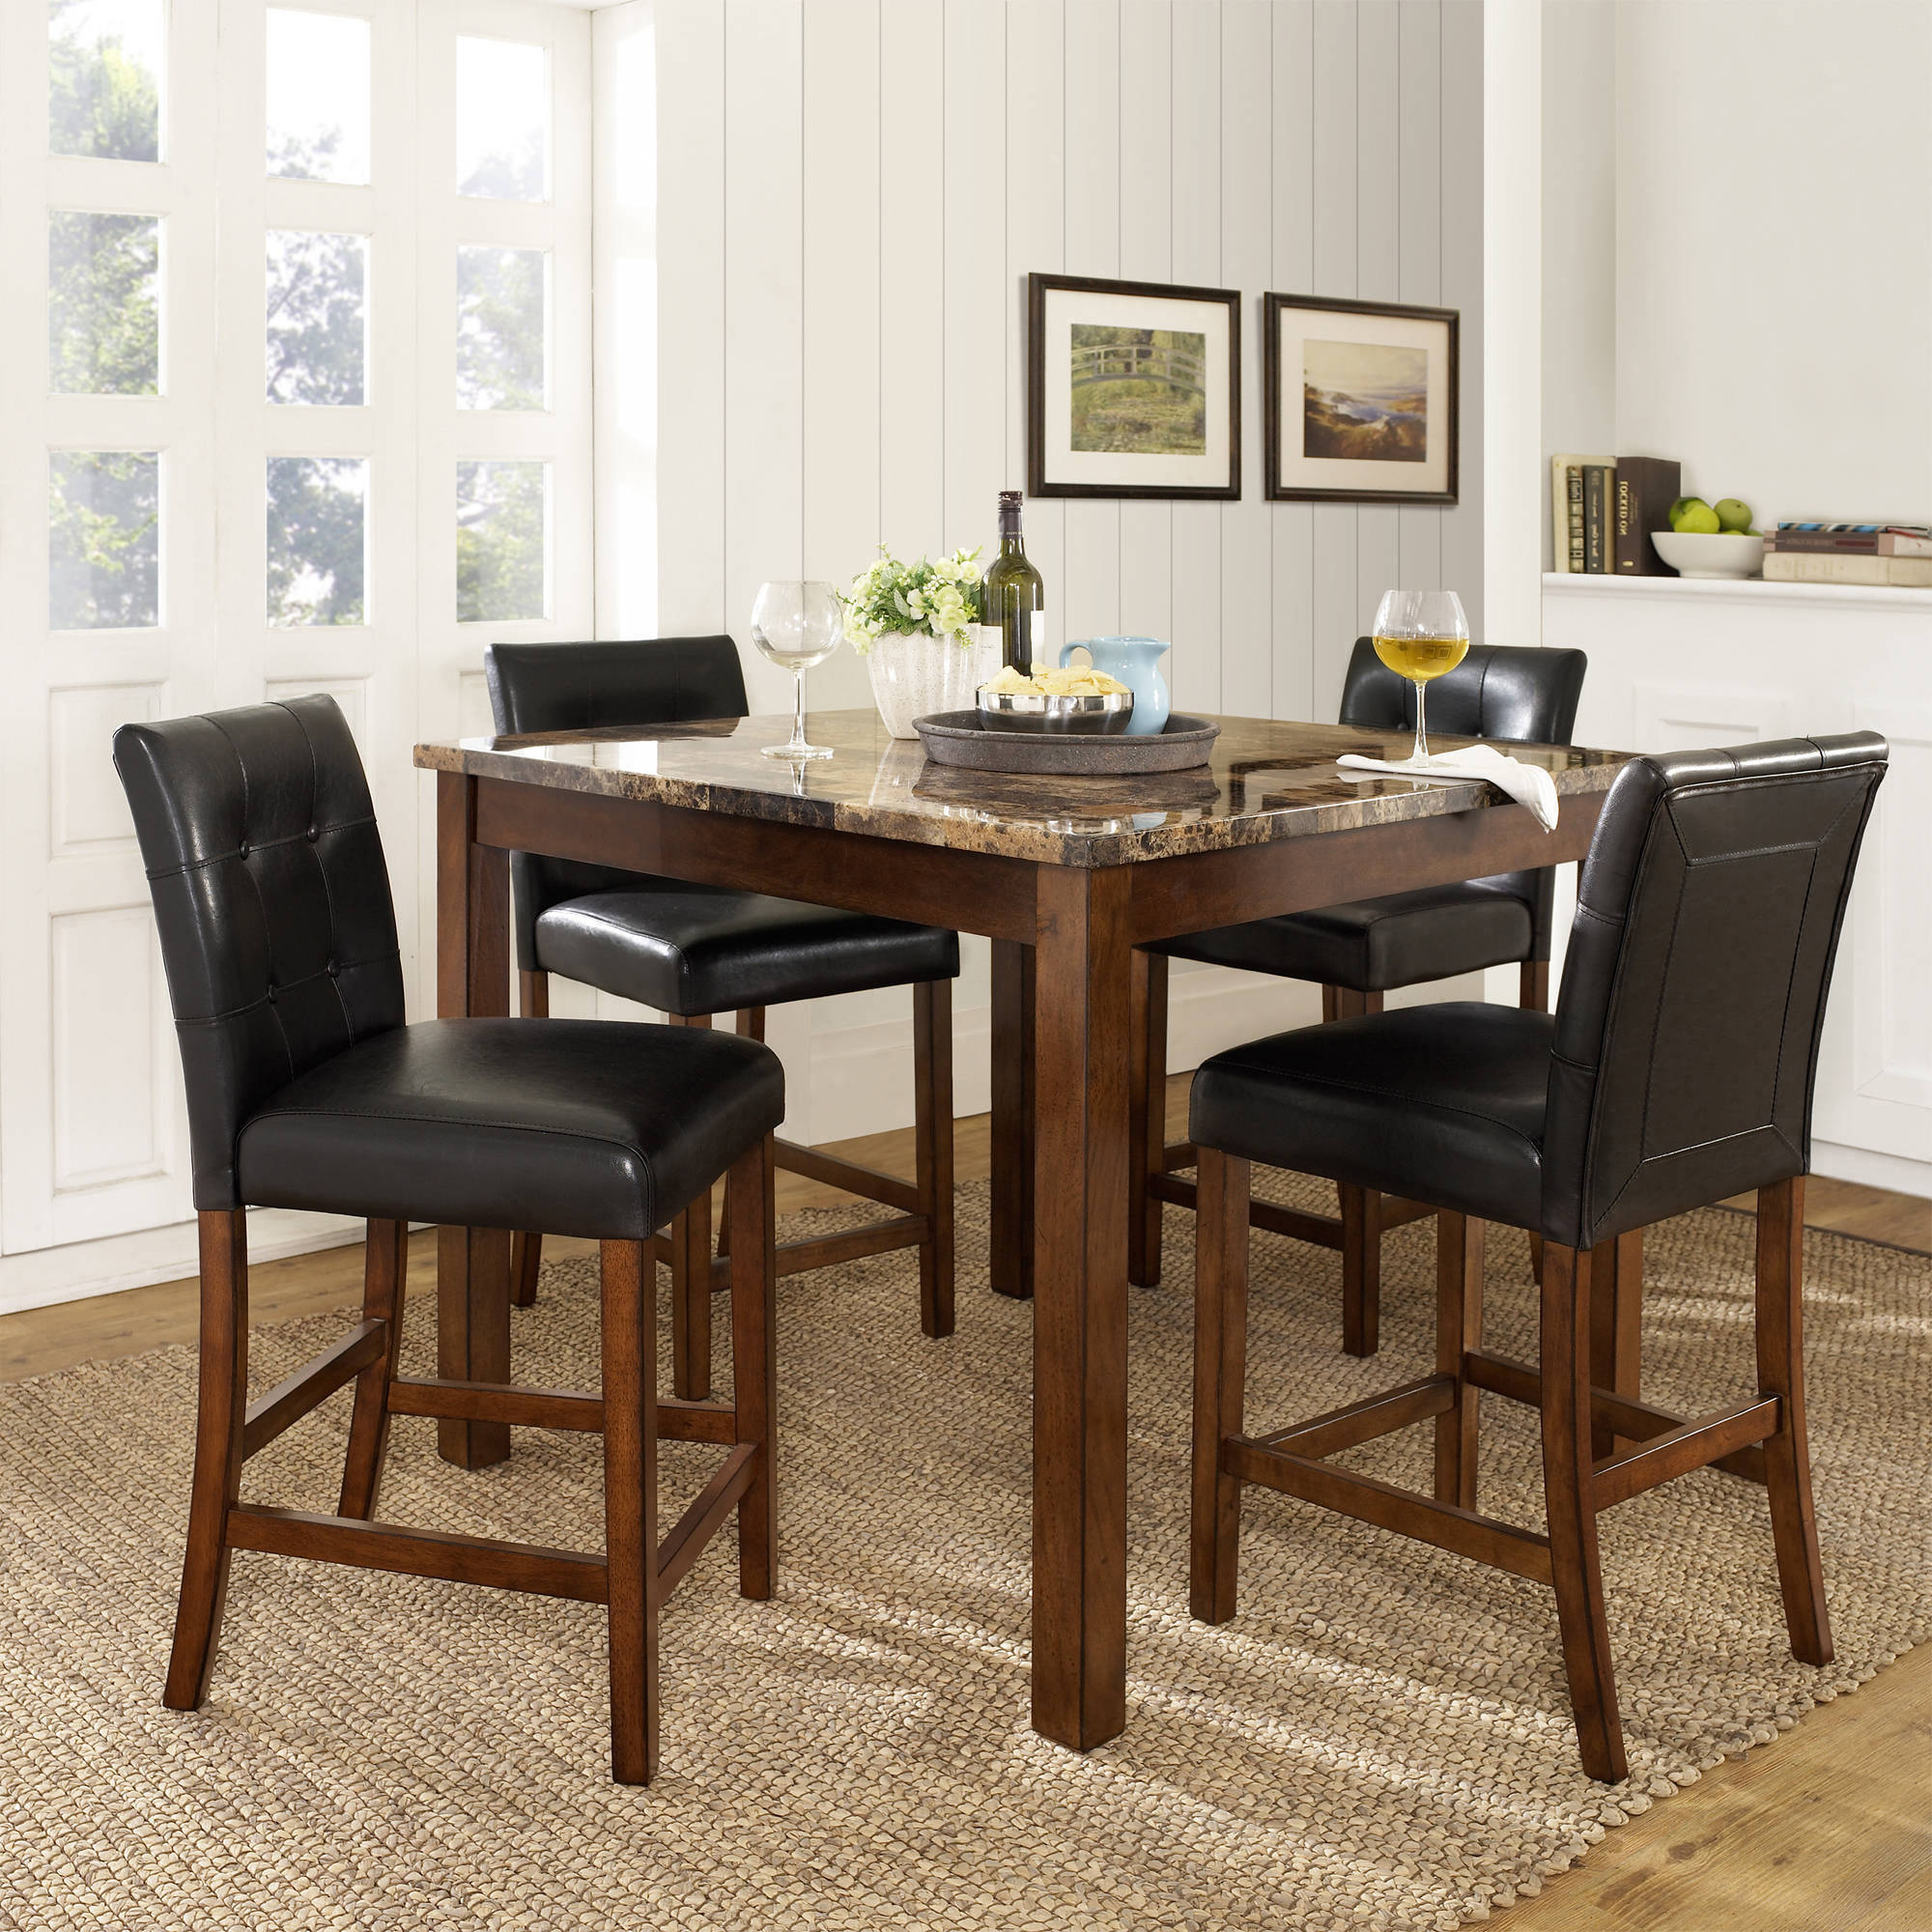 Dorel Living Andover 5 Piece Counter Height Dining Set, Multiple Colors In Most Recent 5 Piece Dining Sets (View 17 of 20)